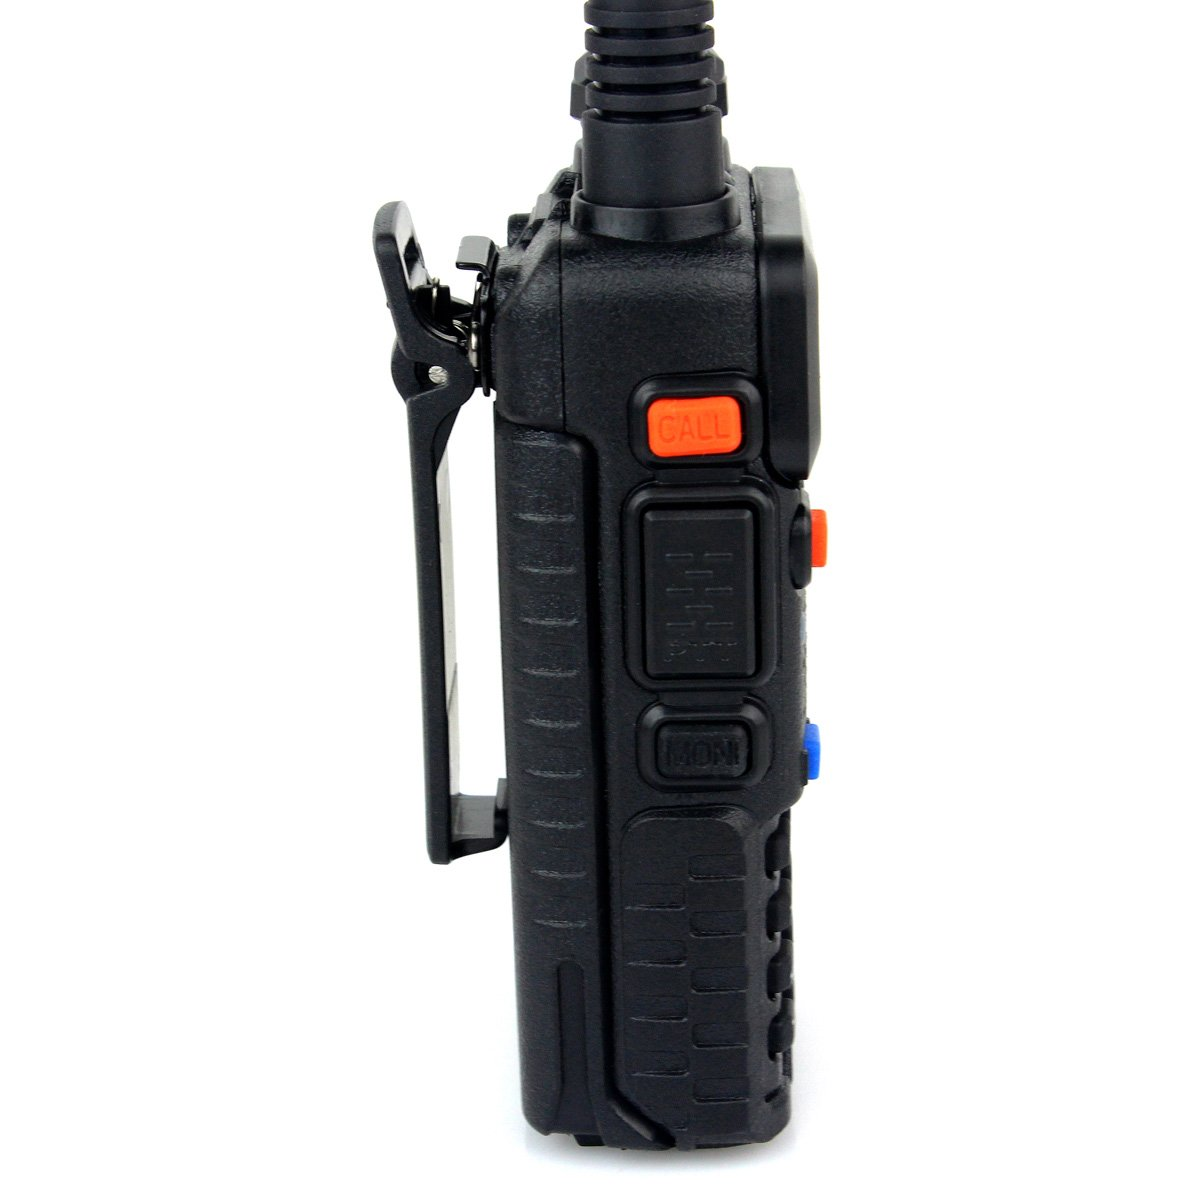 Retevis RT-5R 2 Way Radio 5W 128CH UHF/VHF 400-520MHz/136-174MHZ Walkie Talkies (6 Pack) and Programming Cable by Retevis (Image #4)